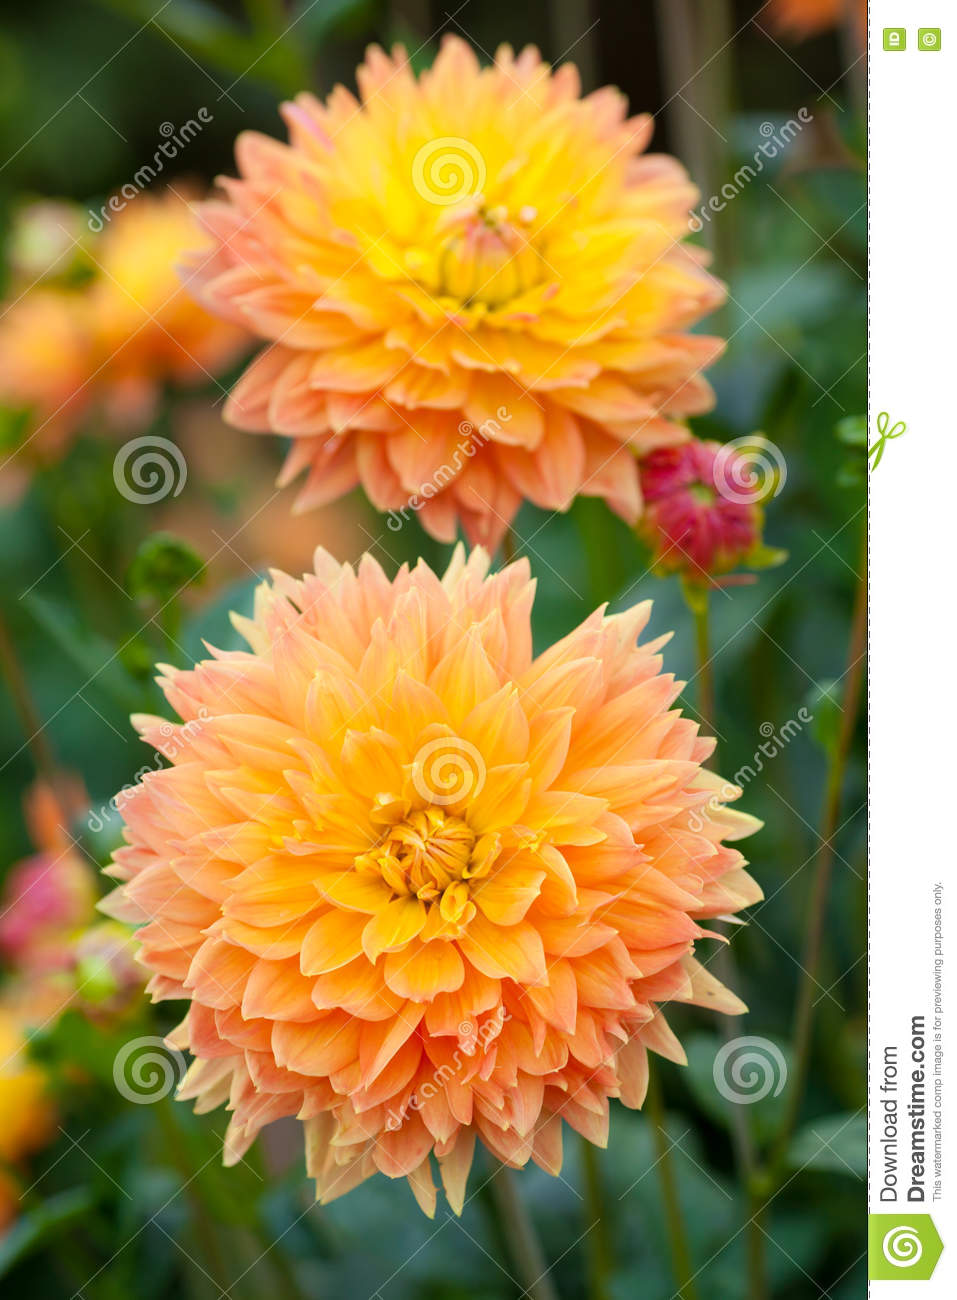 Dahlia Yellow And Orange Flowers In Garden Full Bloom Stock Photo